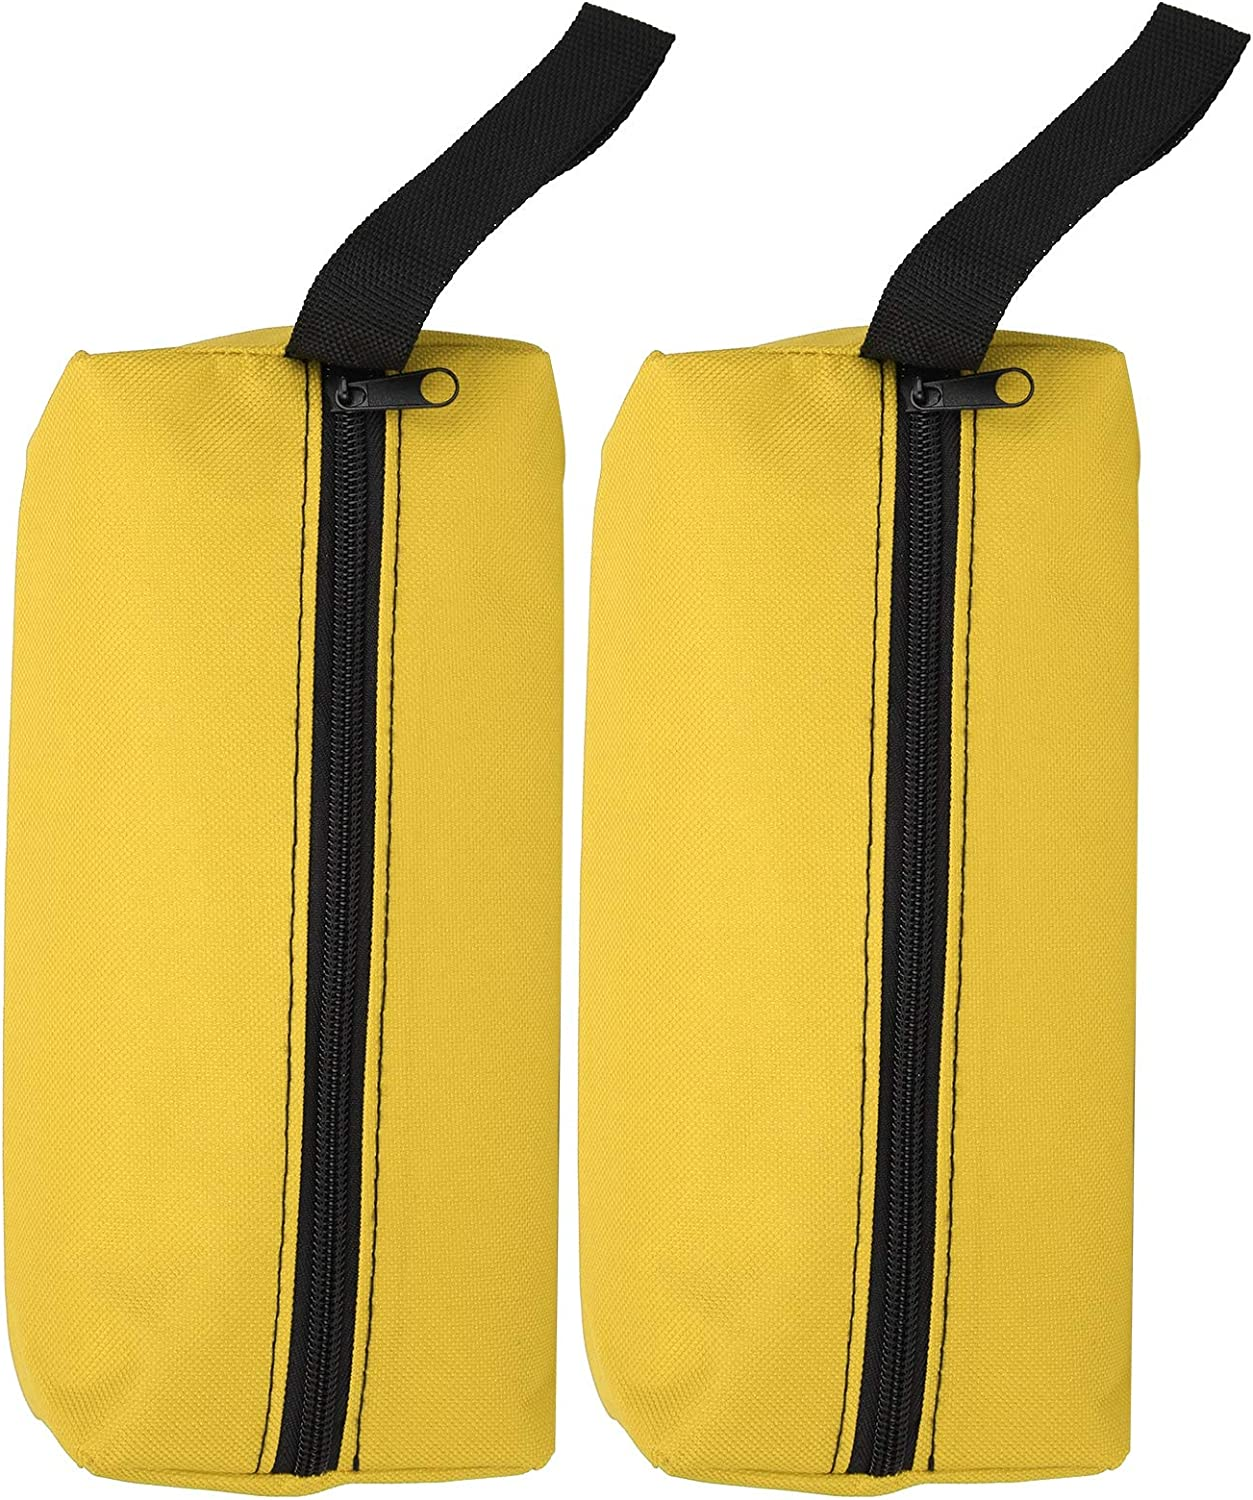 Vbestlife 2pcs Portable Tool Bag, Safe and Tidy Easy to Carry 2p